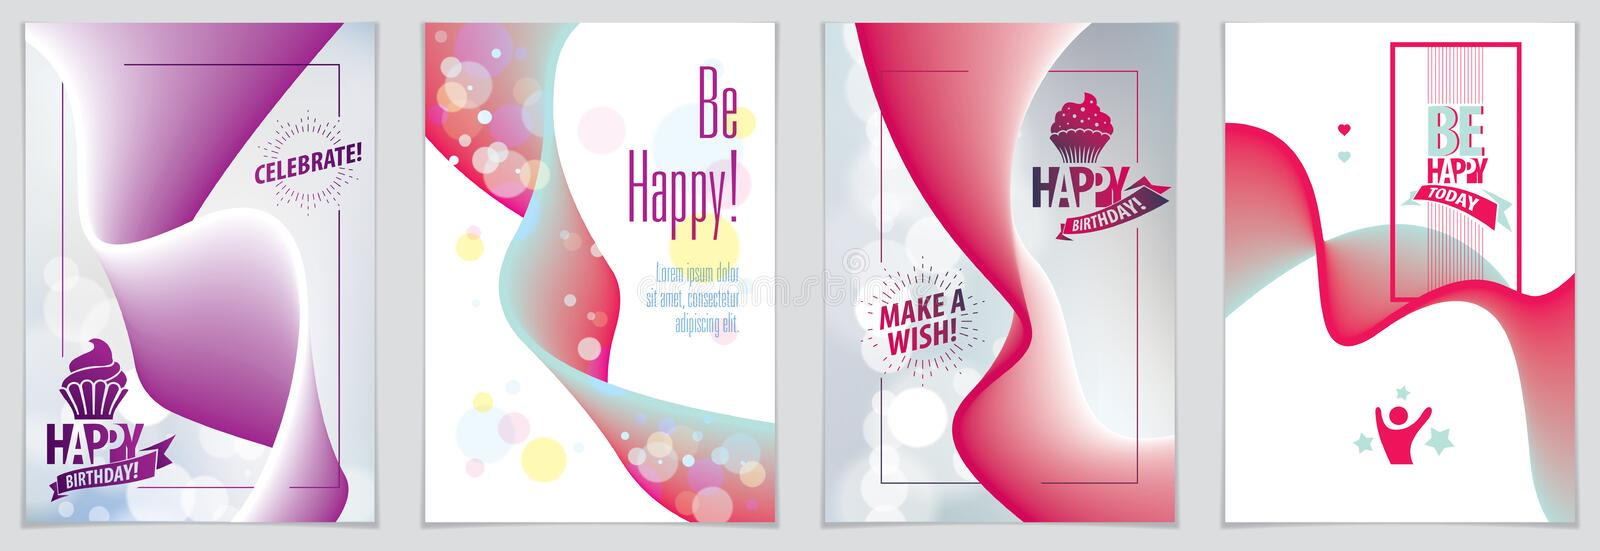 Birthday joyful and bright vector greeting card. Includes lettering composition and balloons combined with wavy fluid colorful. Shape abstract backgrounds stock illustration